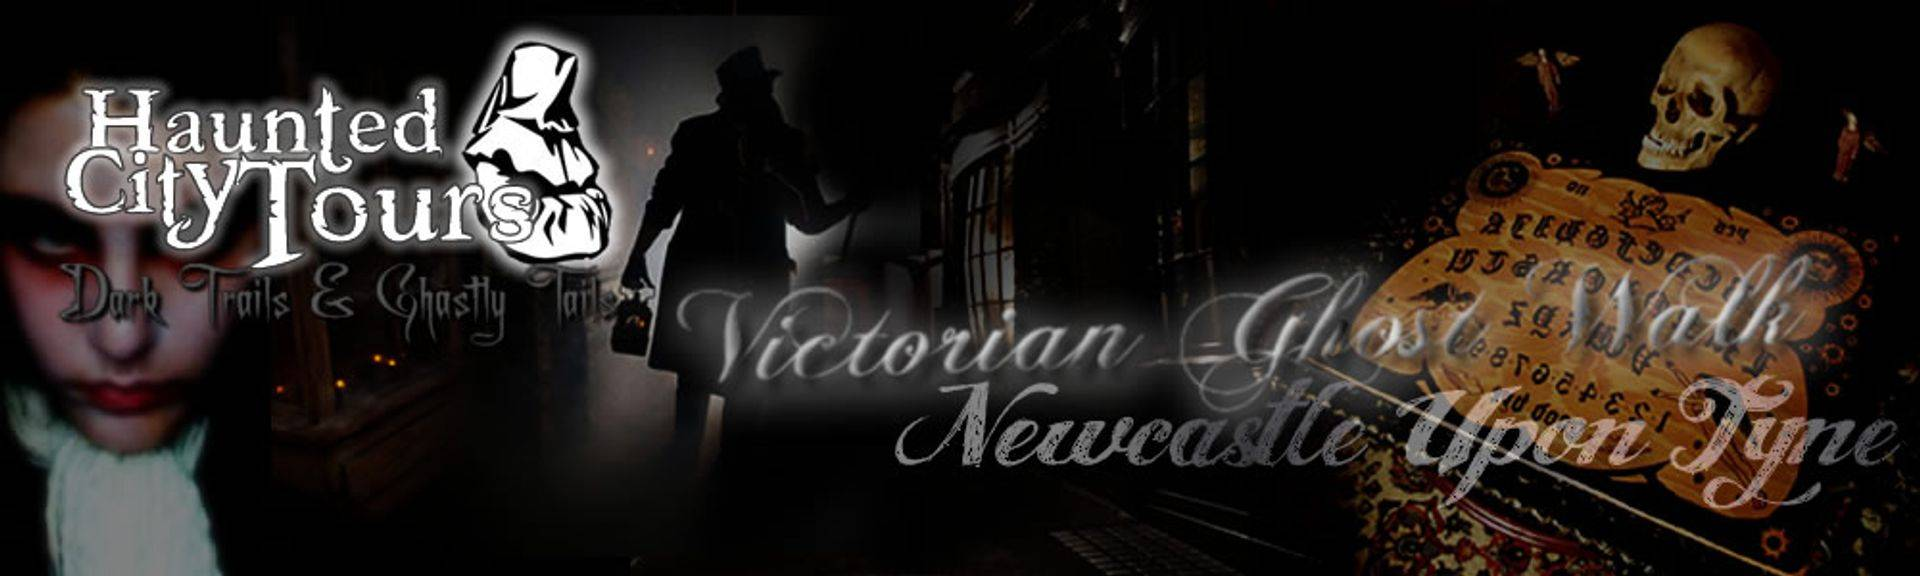 Victorian Ghost Walk of old Newcastle Upon Tyne led by a Victorian Necromancer